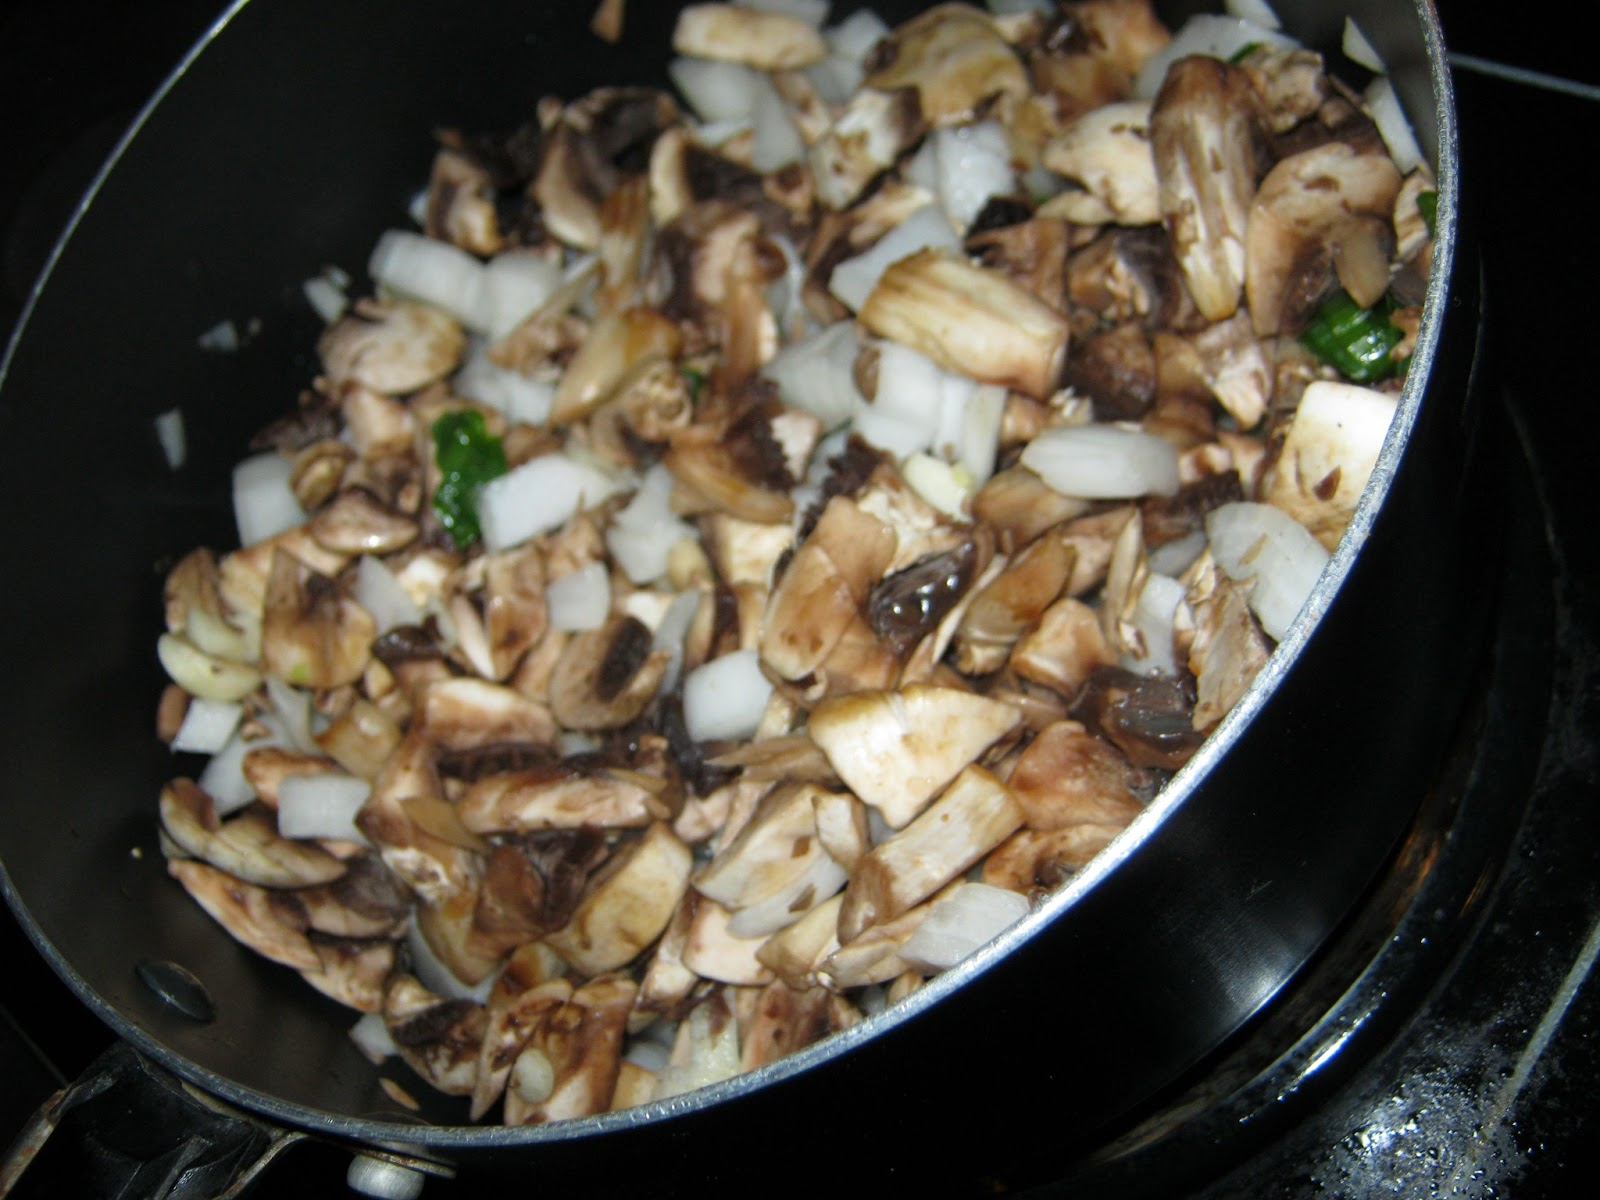 ... Wookie: Jacques Pepin's Crusty Chicken Thighs with Mushroom Sauce